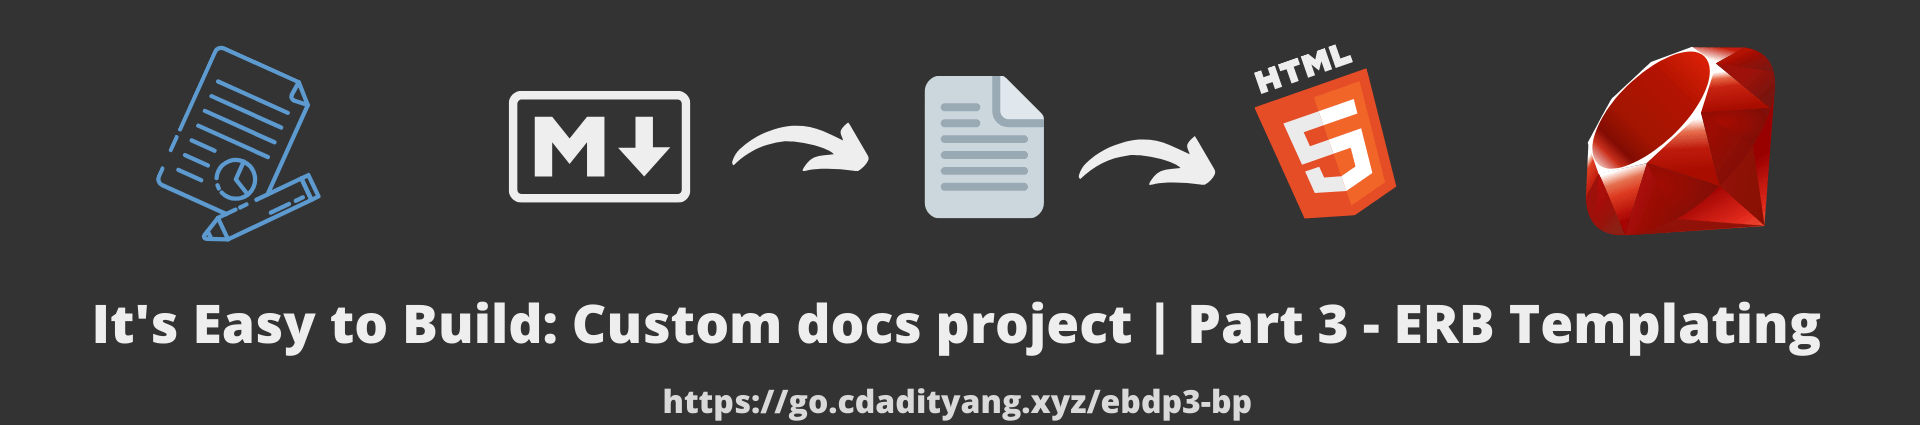 It's Easy to Build: Custom docs project | Part 3 - ERB templating